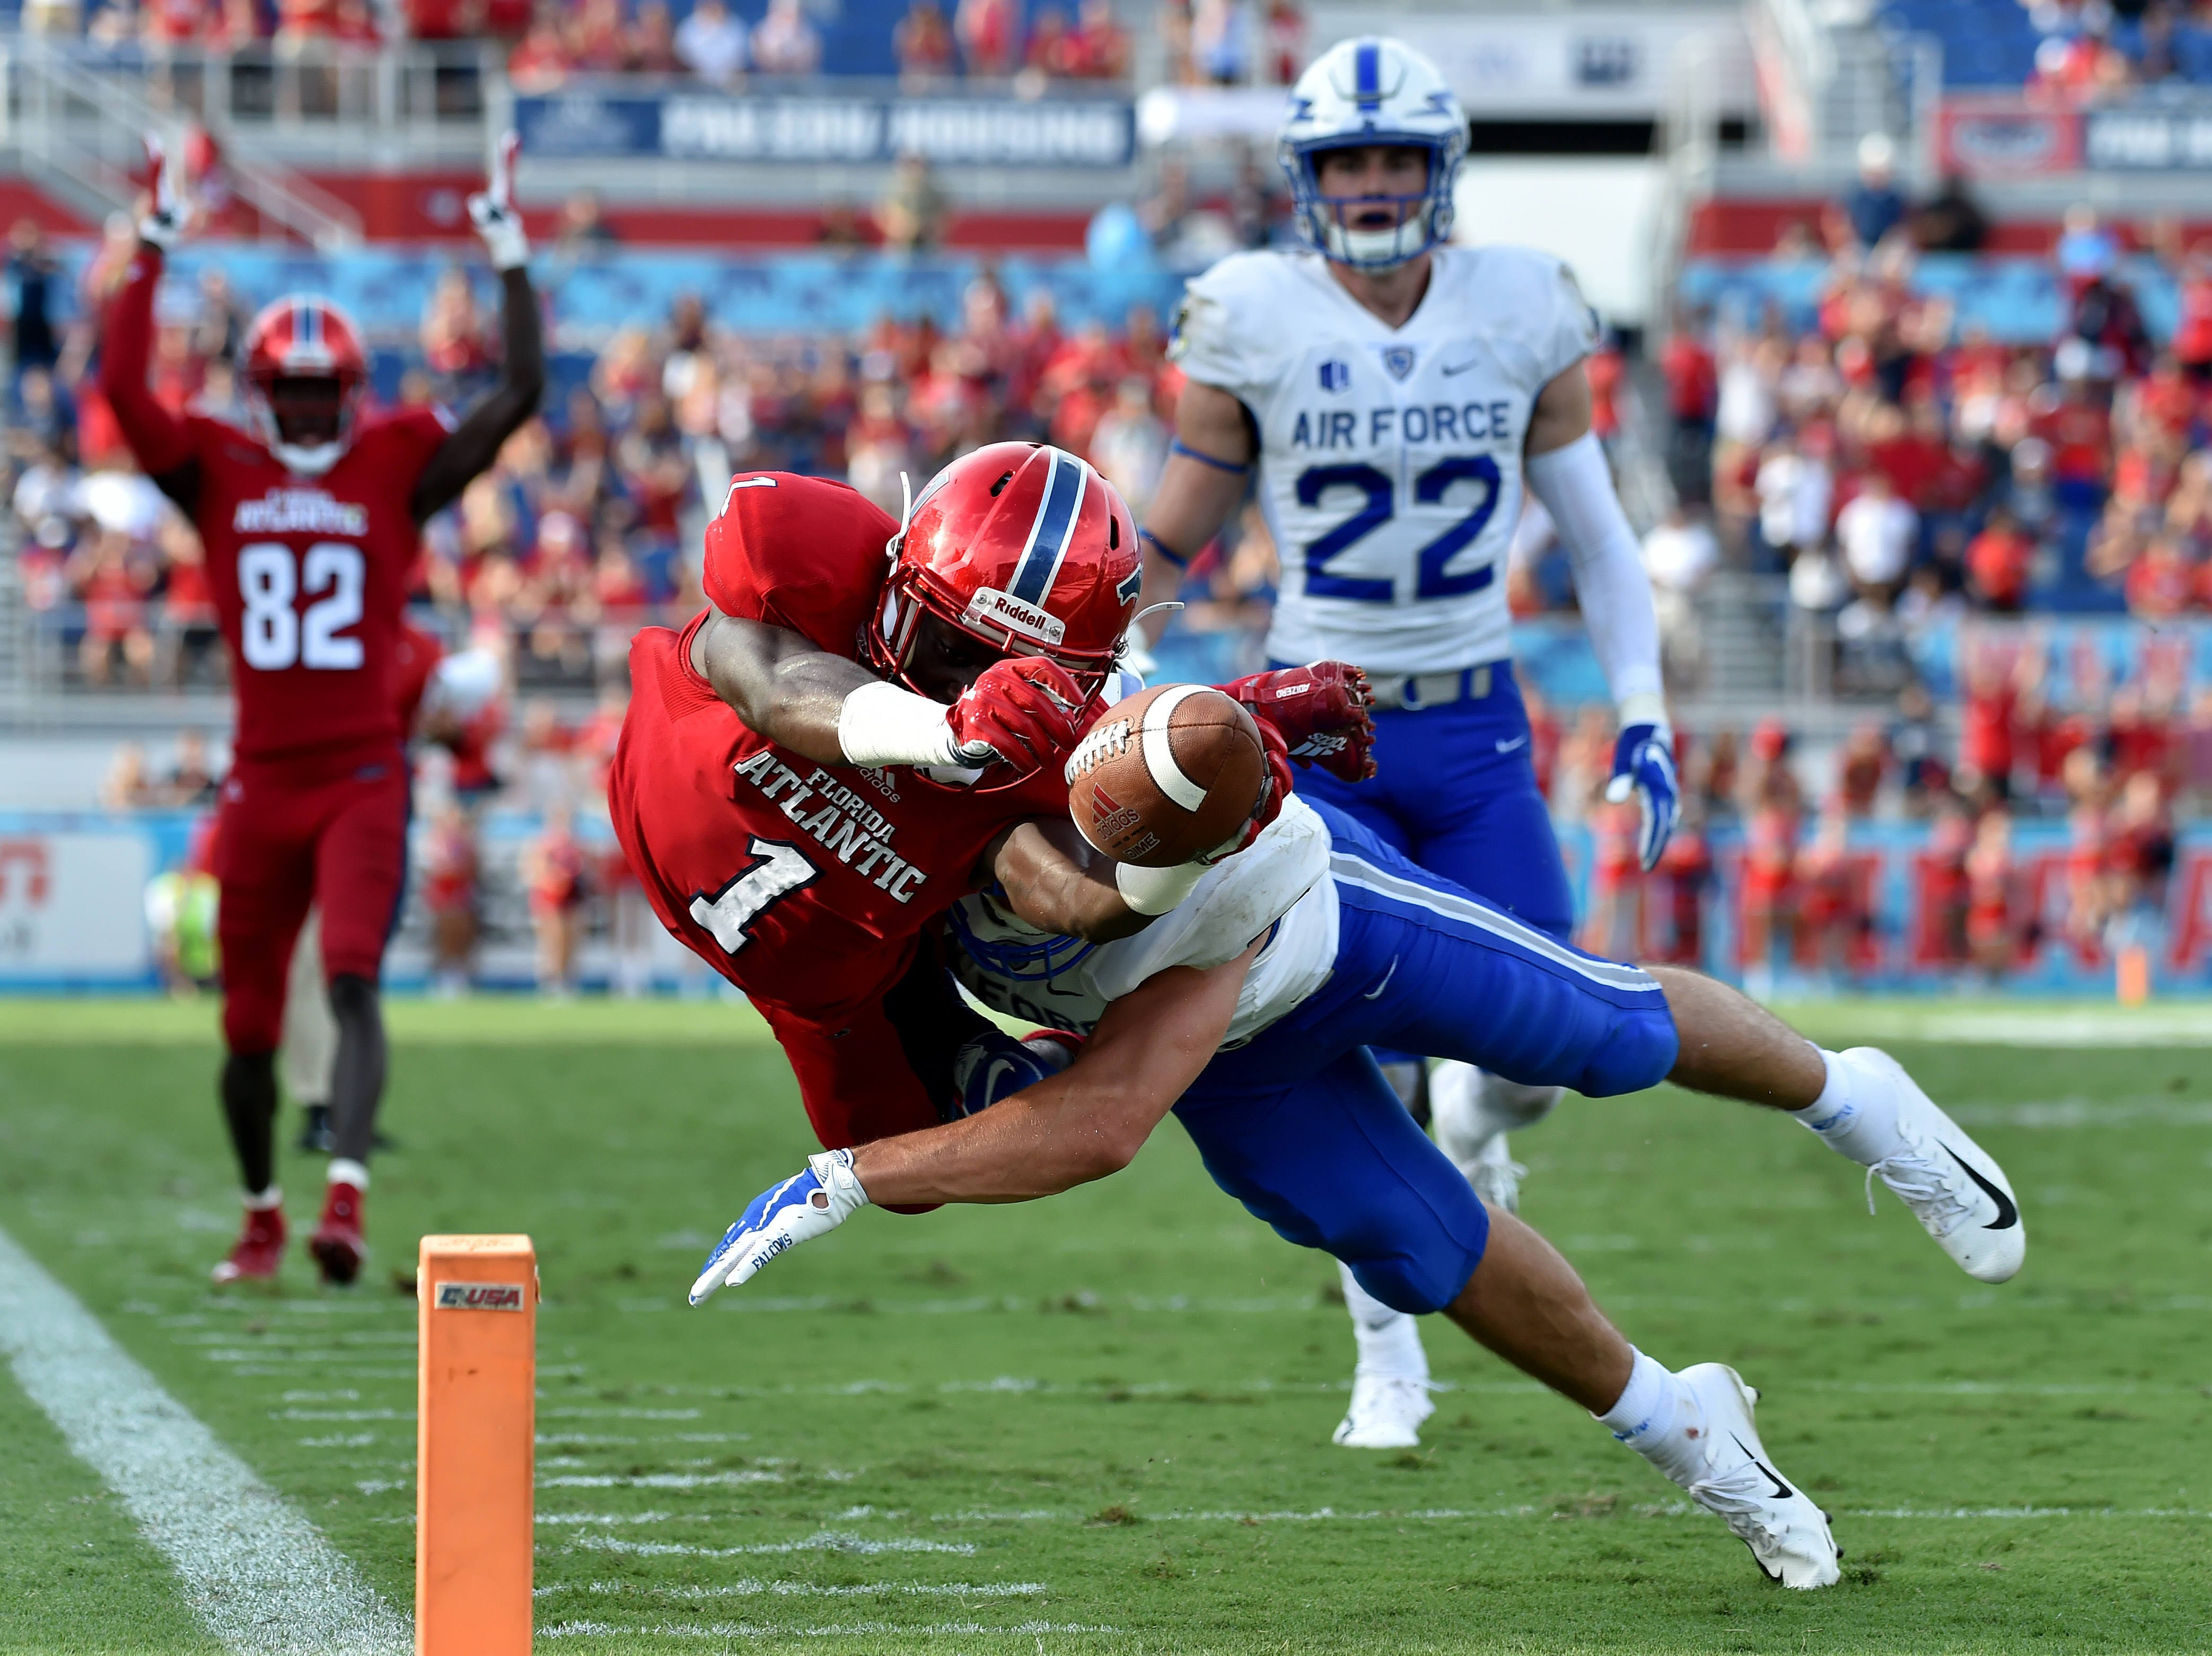 Florida Atlantic Owls wide receiver Willie Wright (1) dives over the pylon for a touchdown as Air Force Falcons defensive back Jeremy Fejedelem (2) defends the play during the second half at FAU Football Stadium.